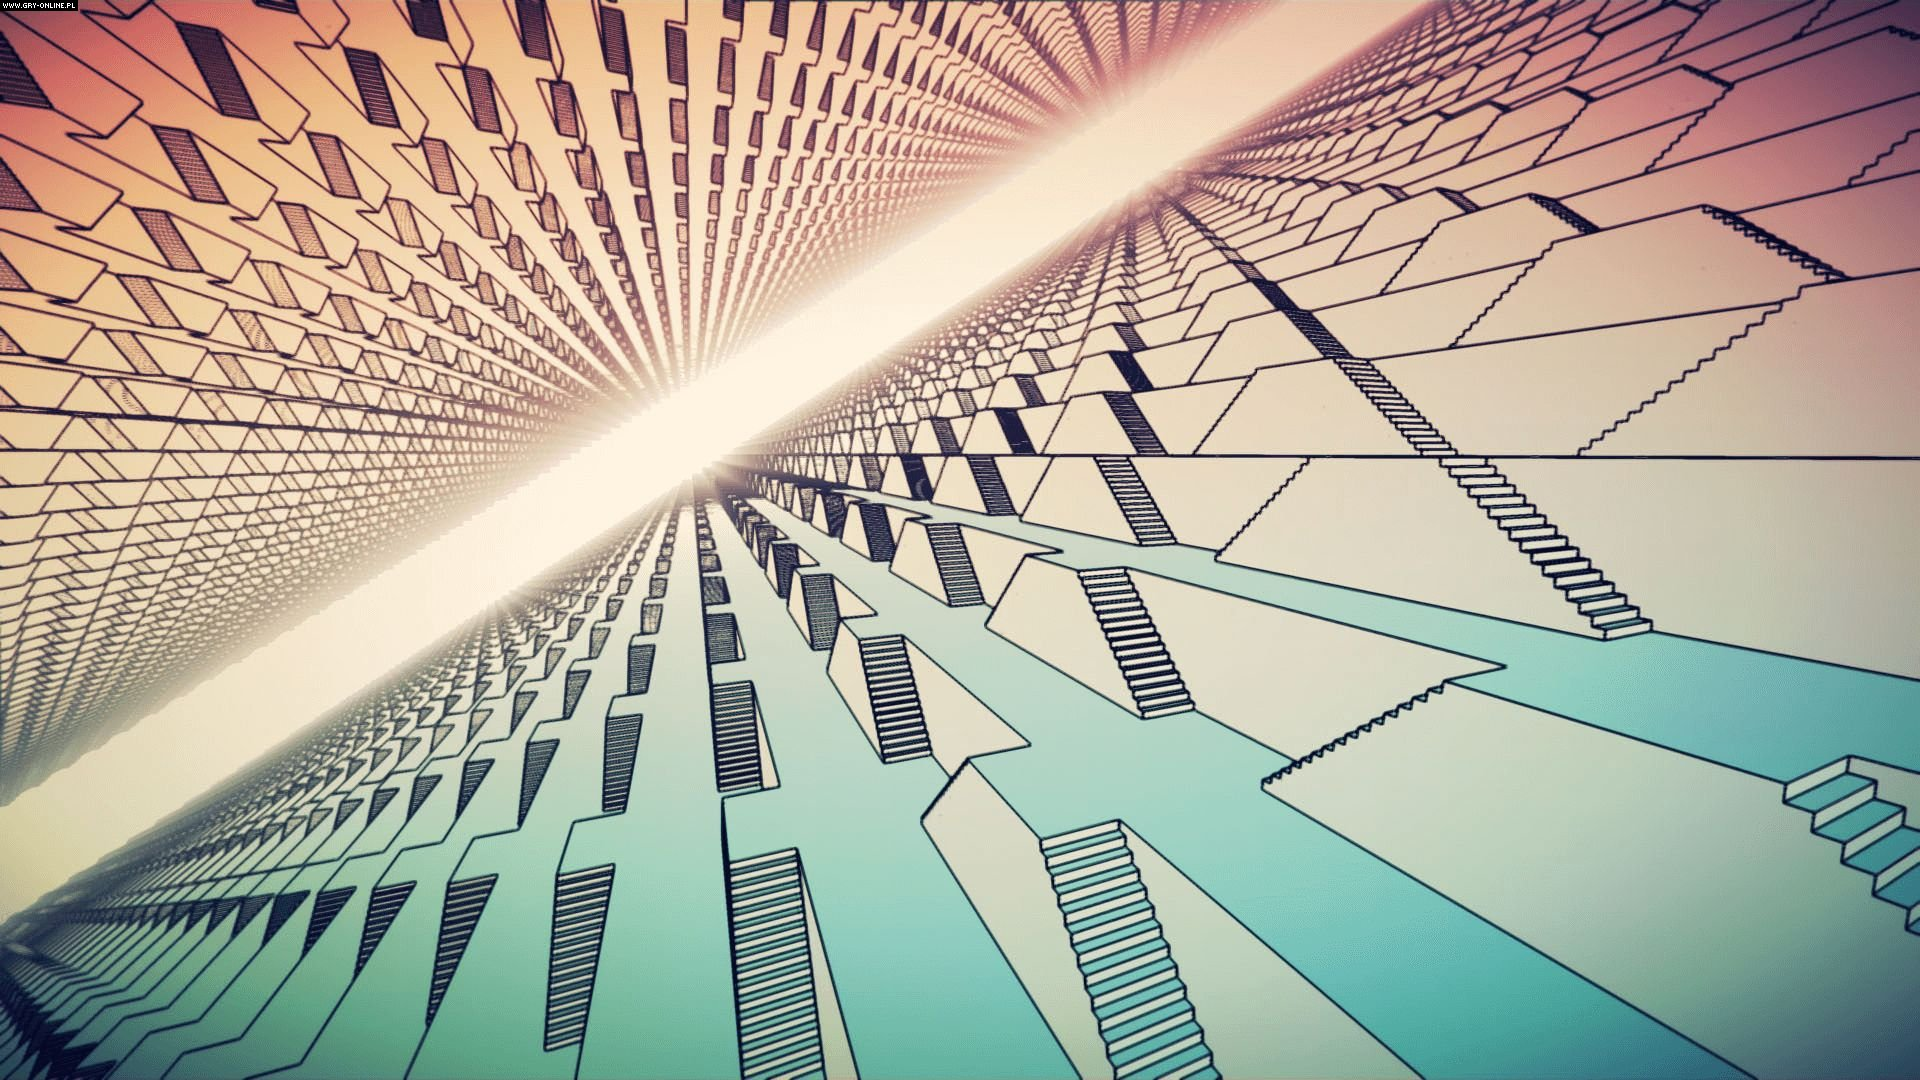 Manifold Garden PC, PS4 Gry Screen 17/23, William Chyr Studio